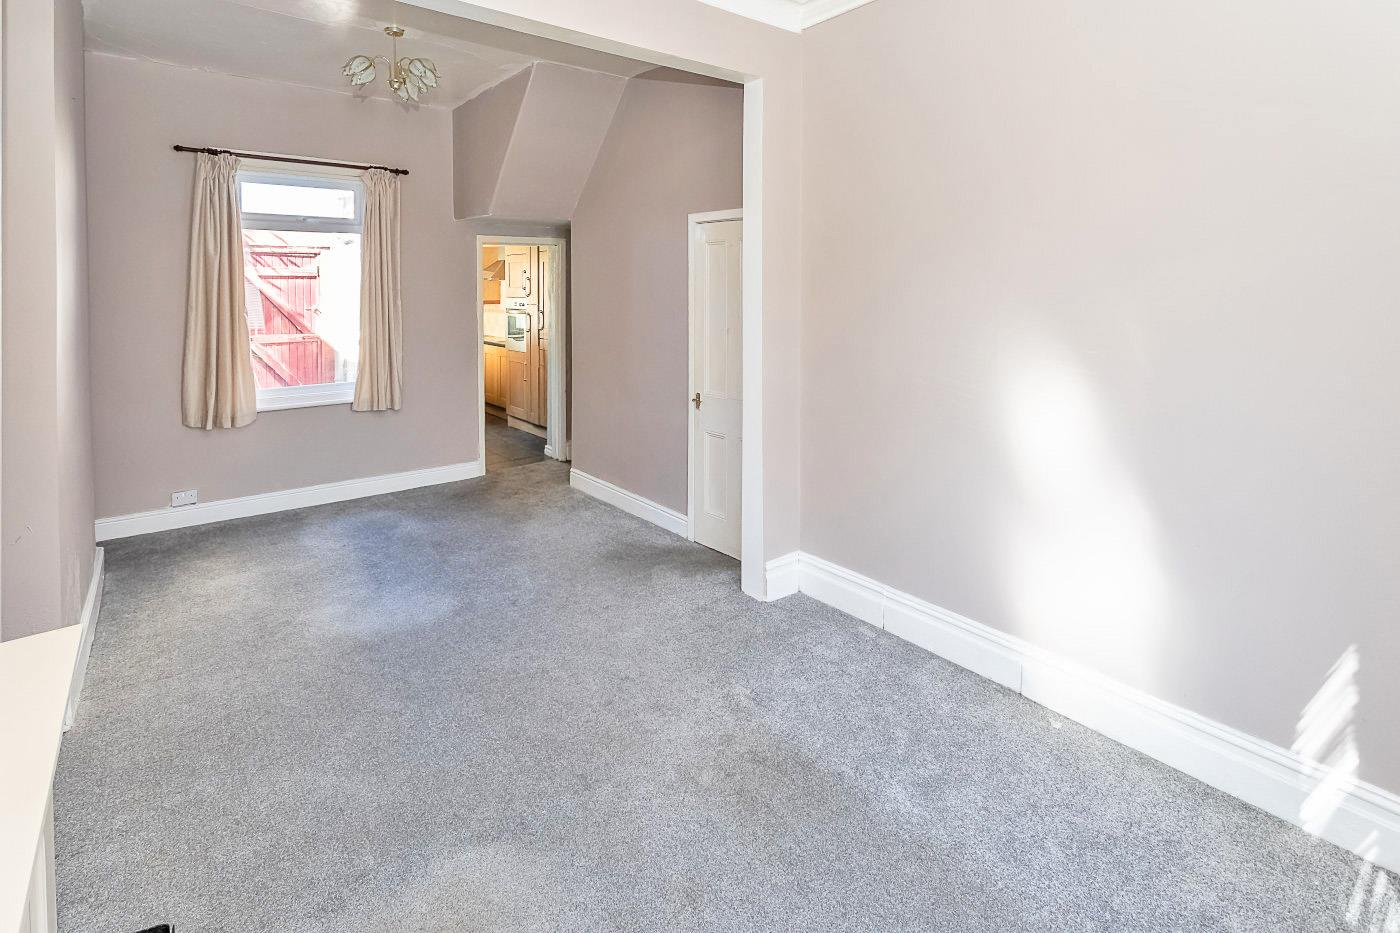 The house is in good shape - as this living room shows. Image: Zoopla